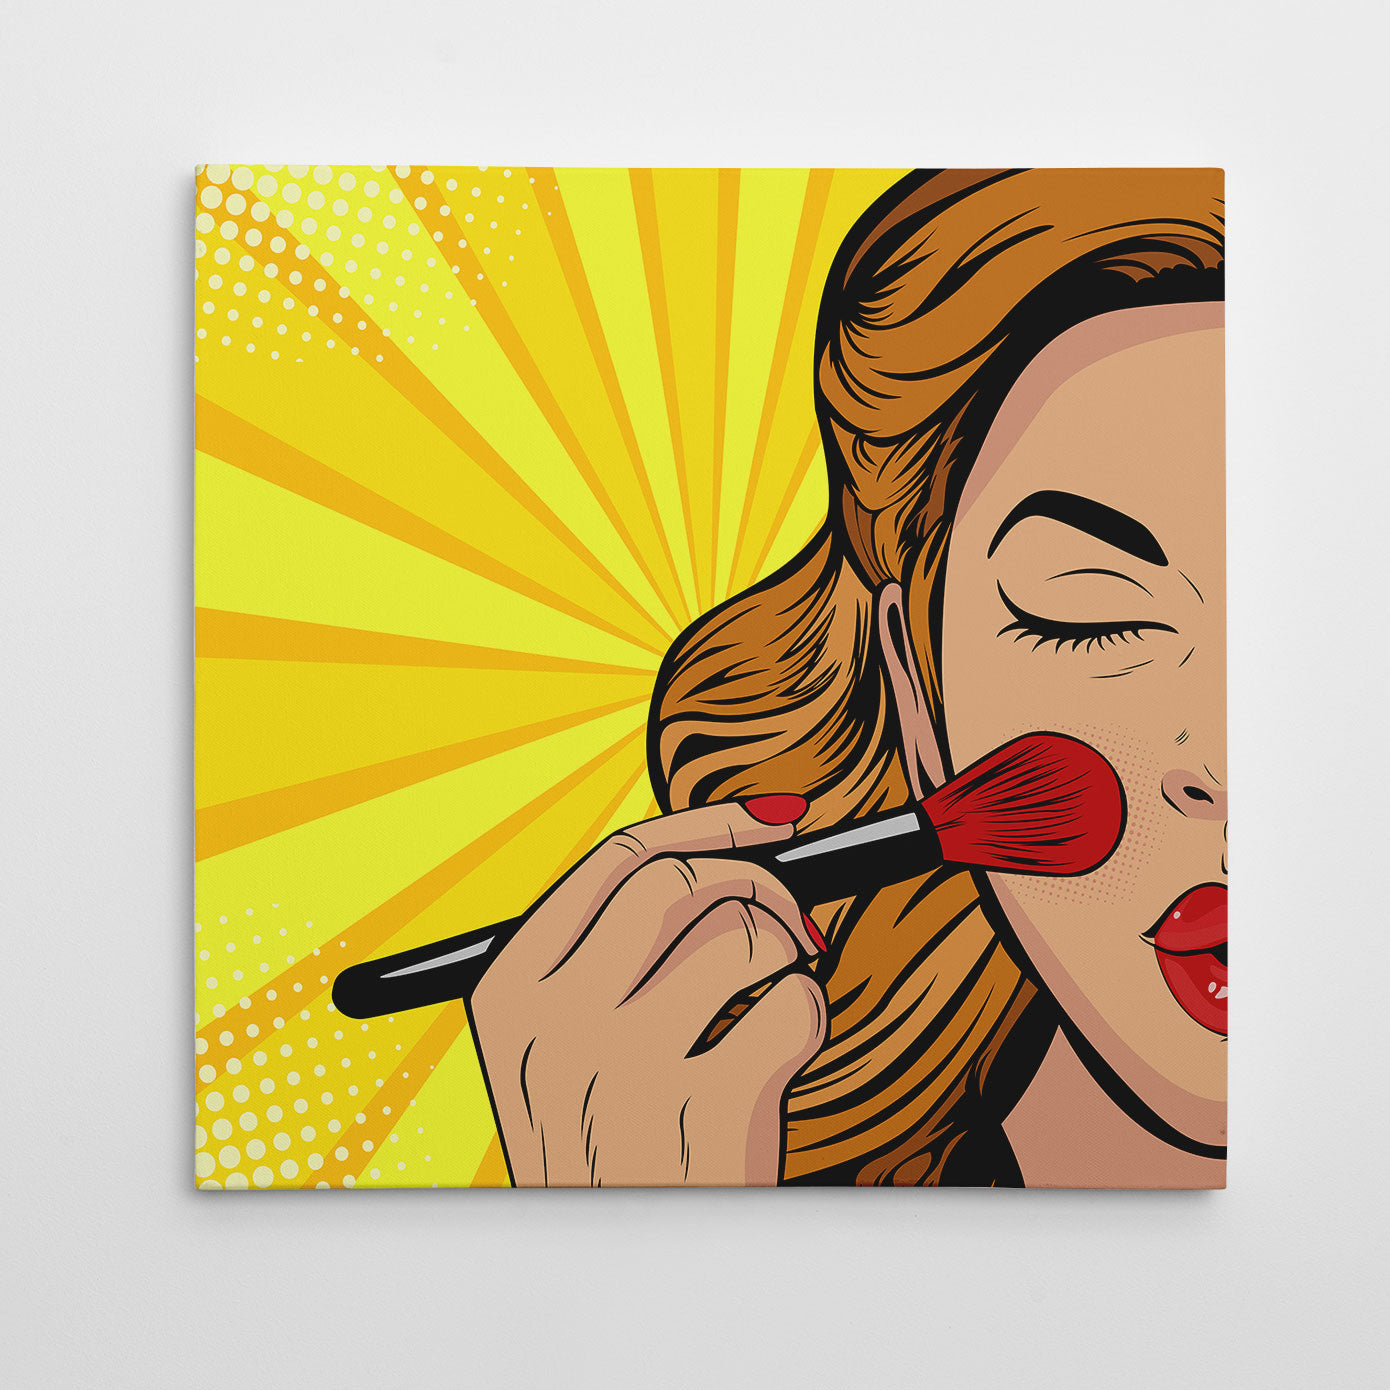 Square pop art canvas print with a girl doing her makeup, on a yellow background